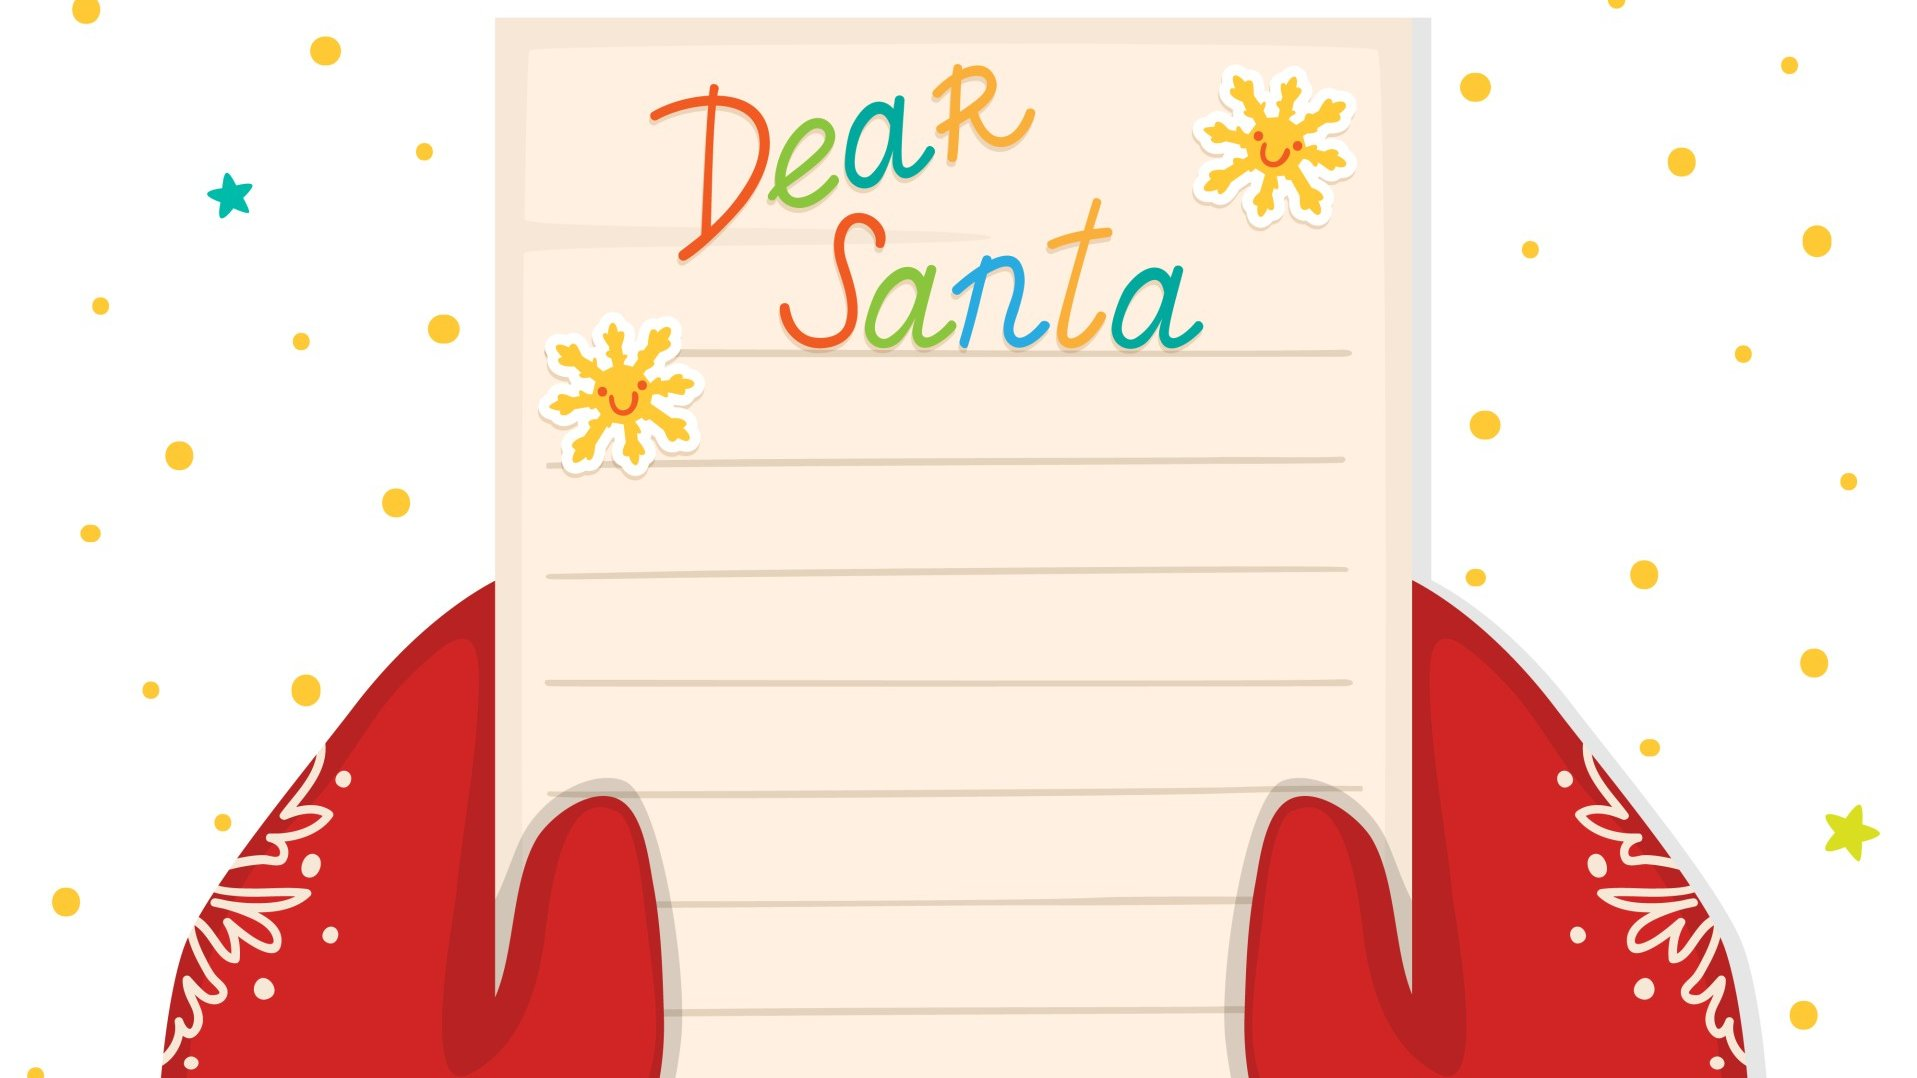 Children can write to Santa Claus and ask for presents.